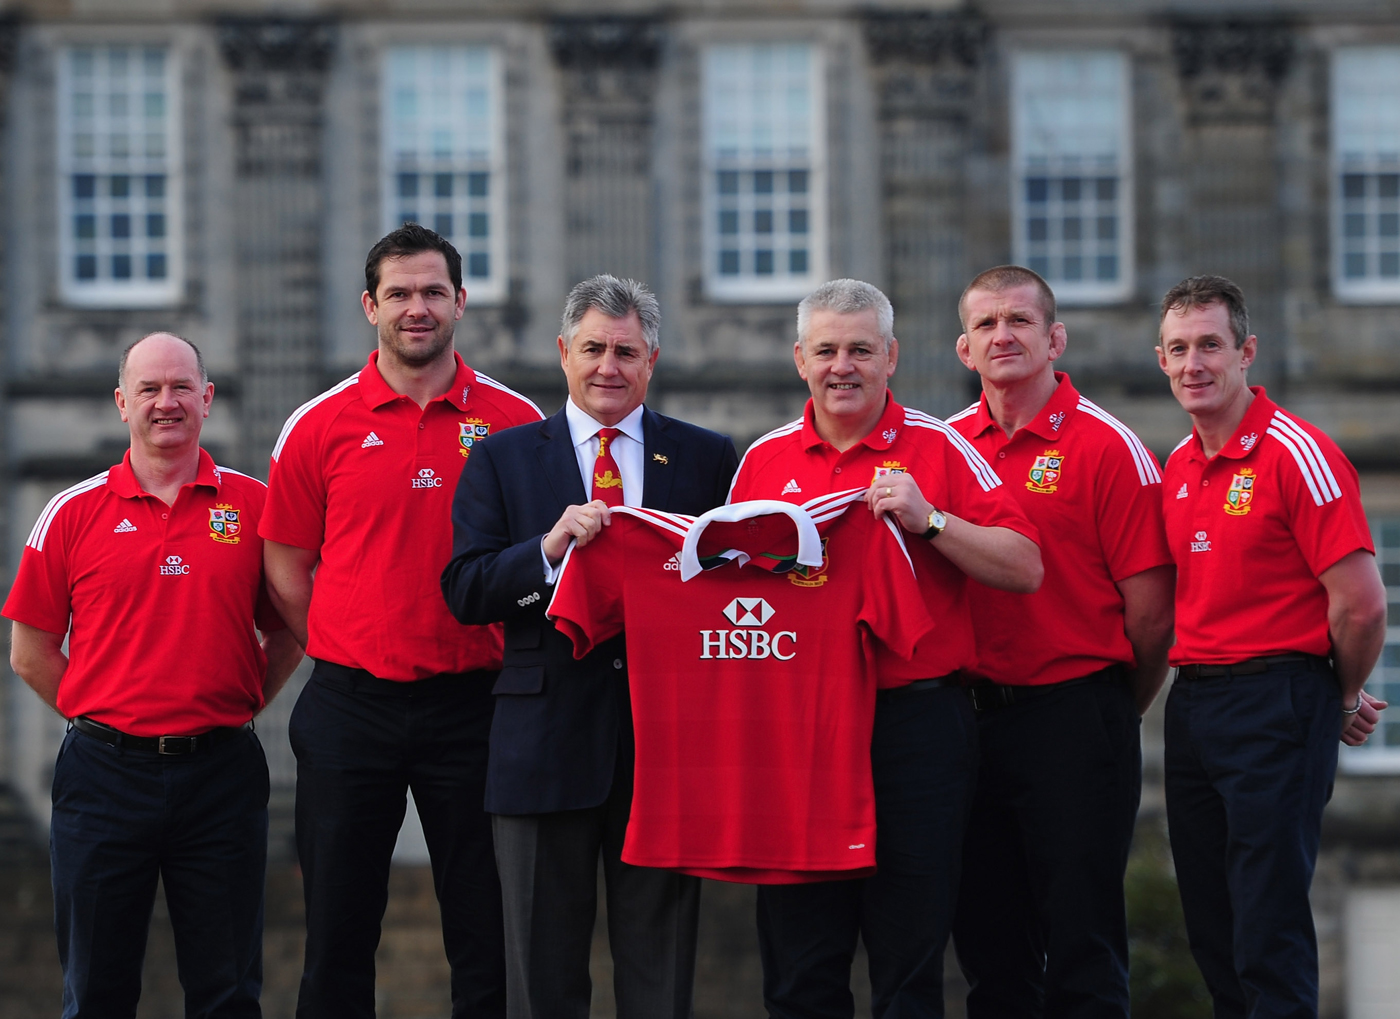 Lions Coaches Warren Gatland, Andy Farrell, Graham Rowntree, Rob Howley & Tour Manager Andy Irvine